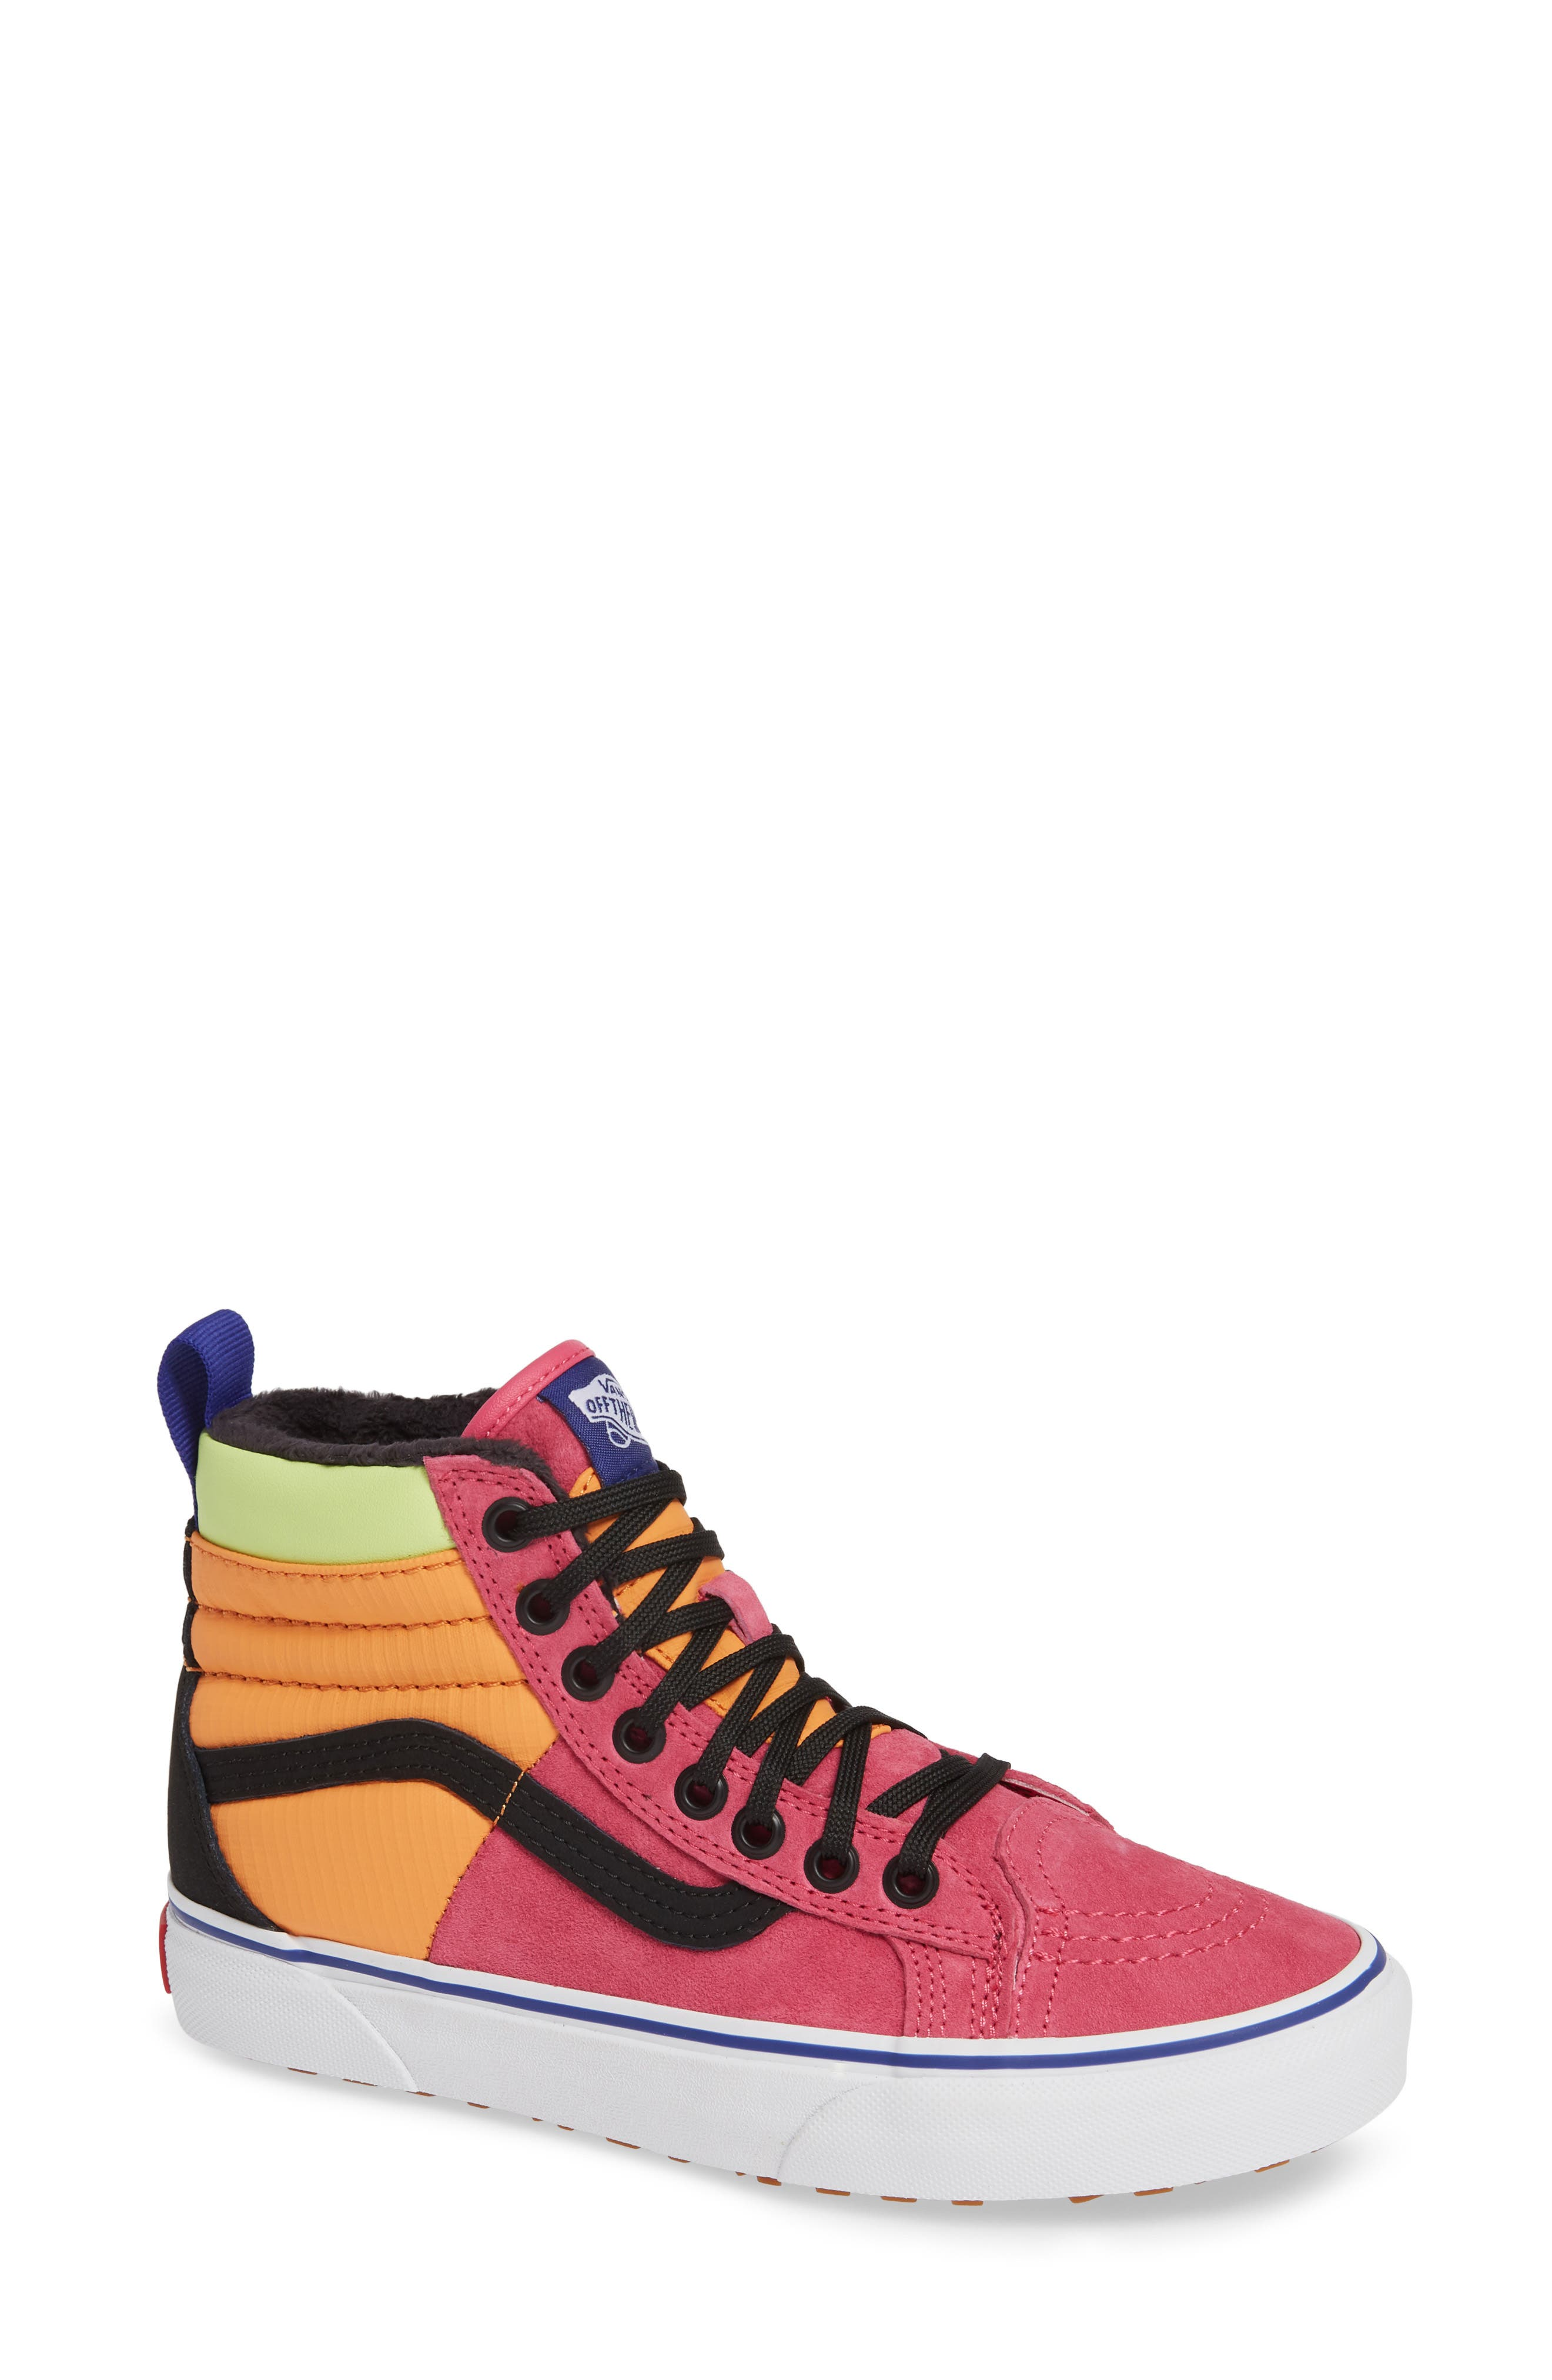 VANS, Sk8-Hi 46 MTE DX Sneaker, Main thumbnail 1, color, PINK YARROW/ TANGERINE/ BLACK